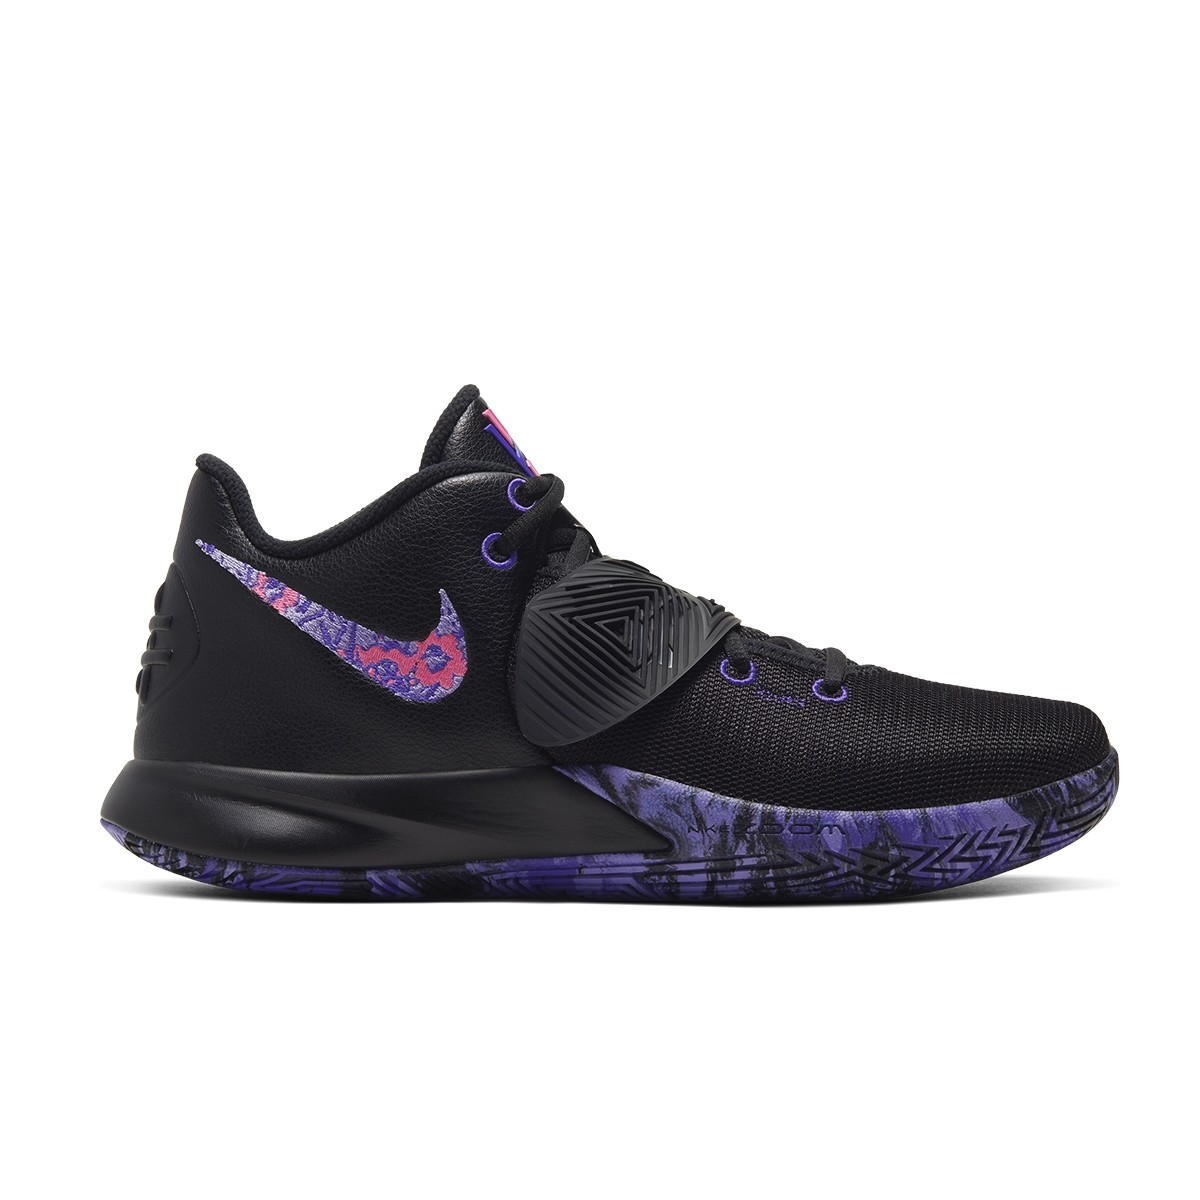 Nike Kyrie Flytrap III Jr 'Fierce Purple'